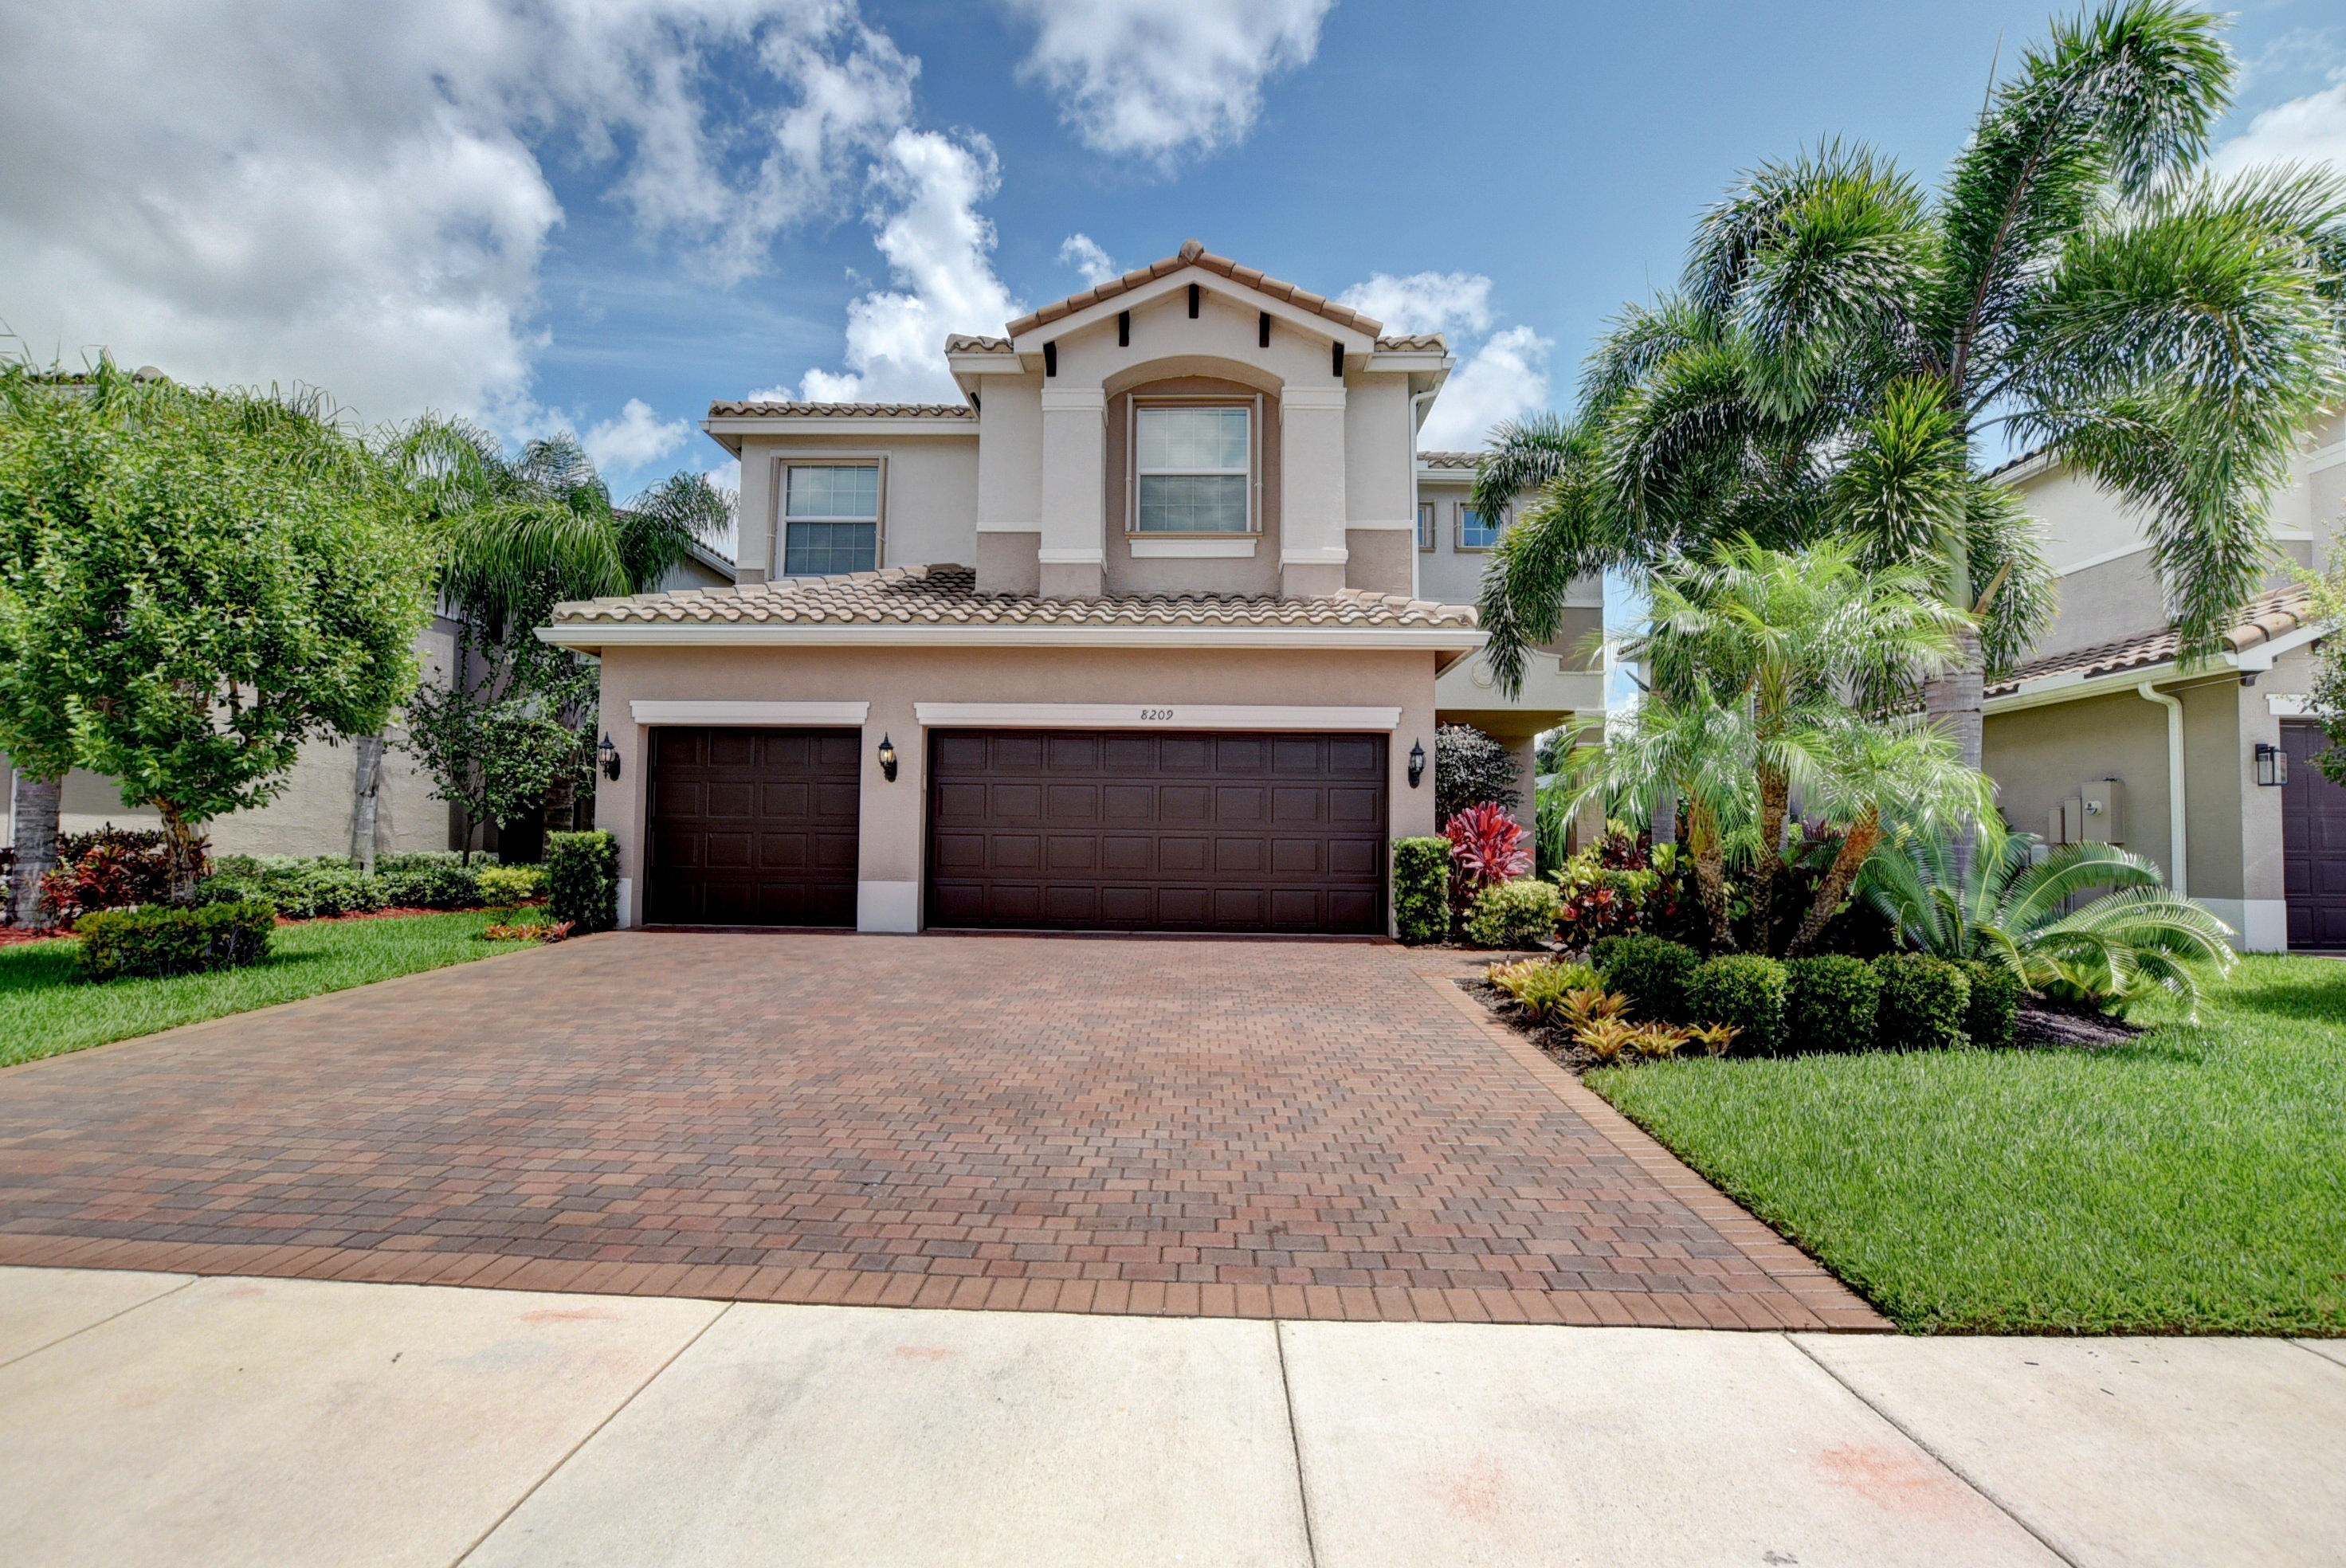 8209 Fiera Ridge Drive  Boynton Beach, FL 33473